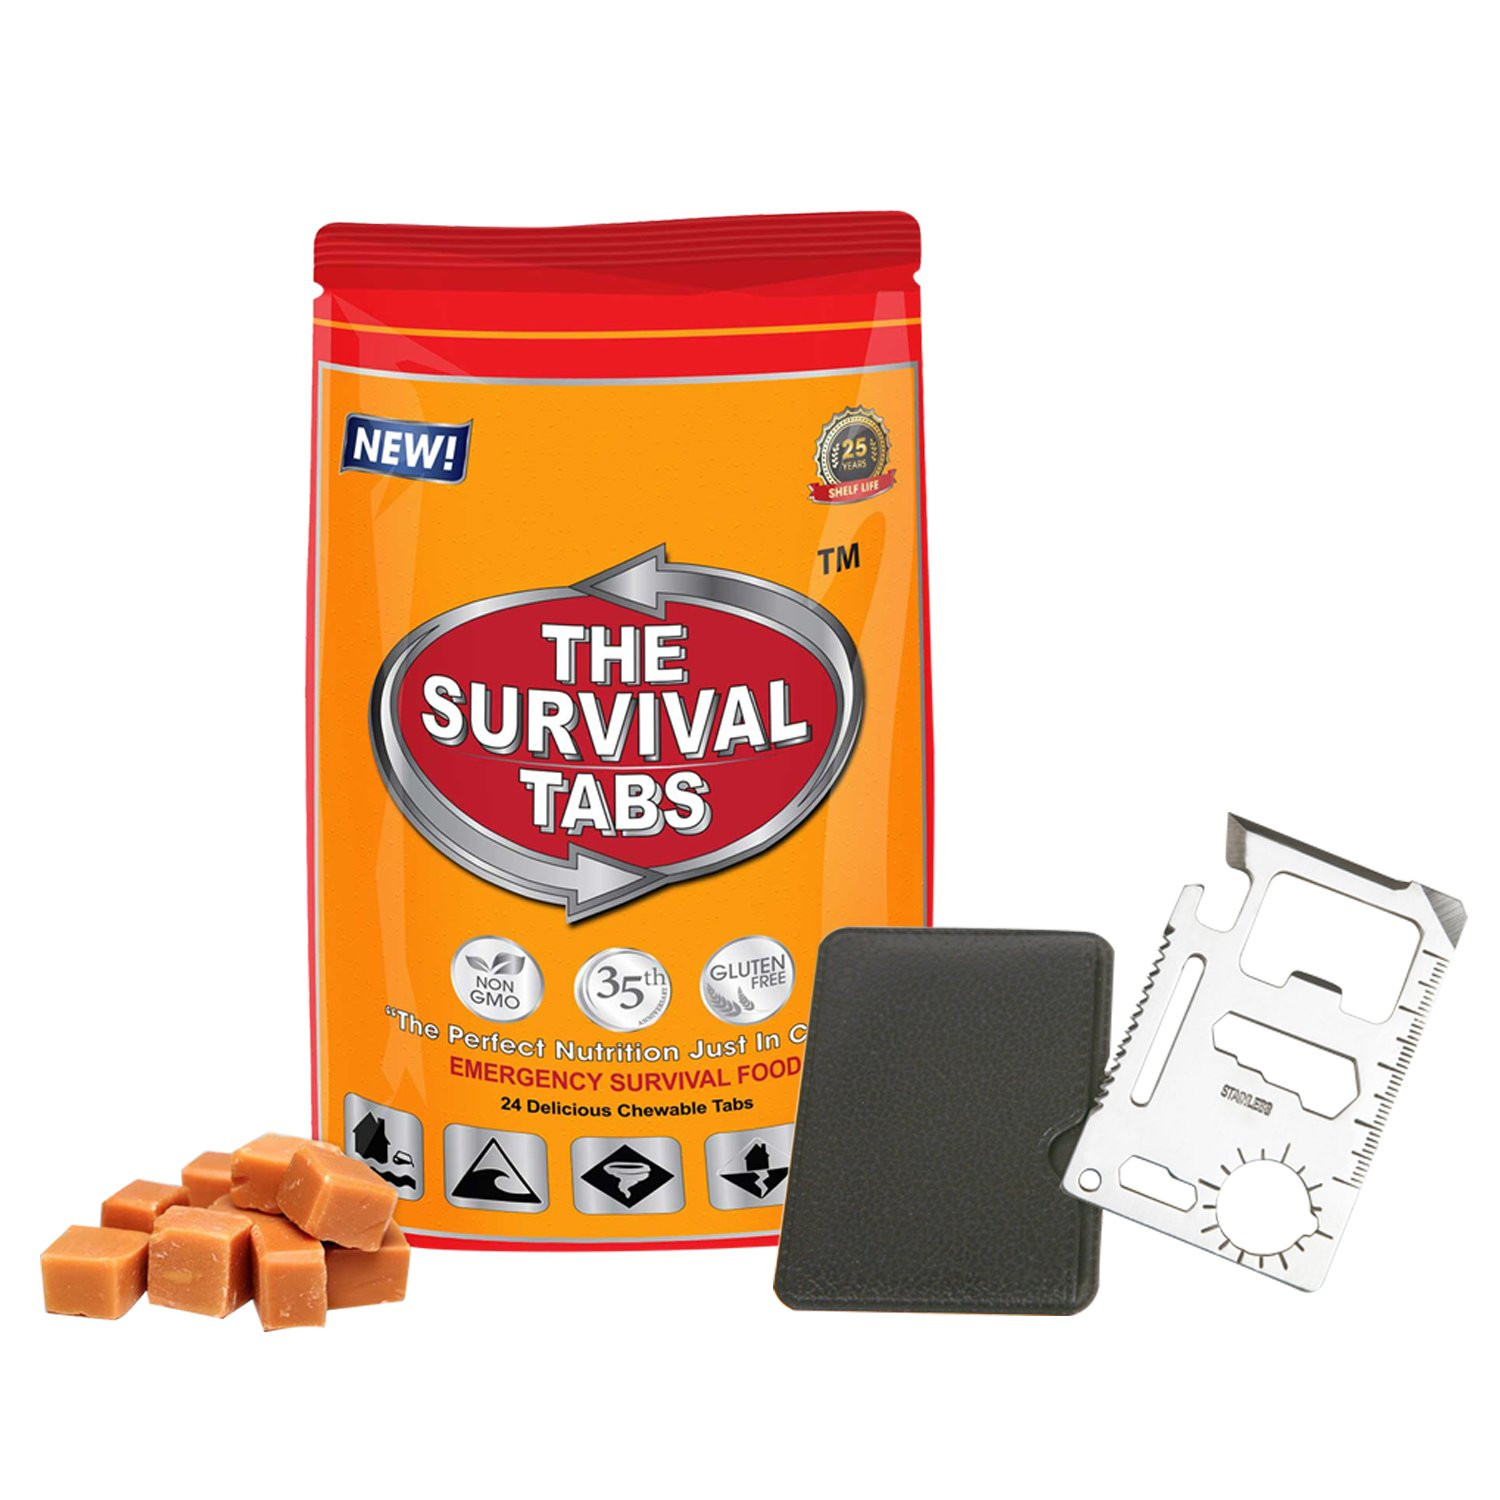 11 in1 Multi Tools Hunting Survival Camping Pocket Military Credit Card Knife + New Advanced Formula MRE Meals Ready-to-eat Survival Meal 2-Day supply 24 tabs Ultimate Bugout Food 25 Years shelf life Gluten Free and Non-GMO - Butterscotch Flavor